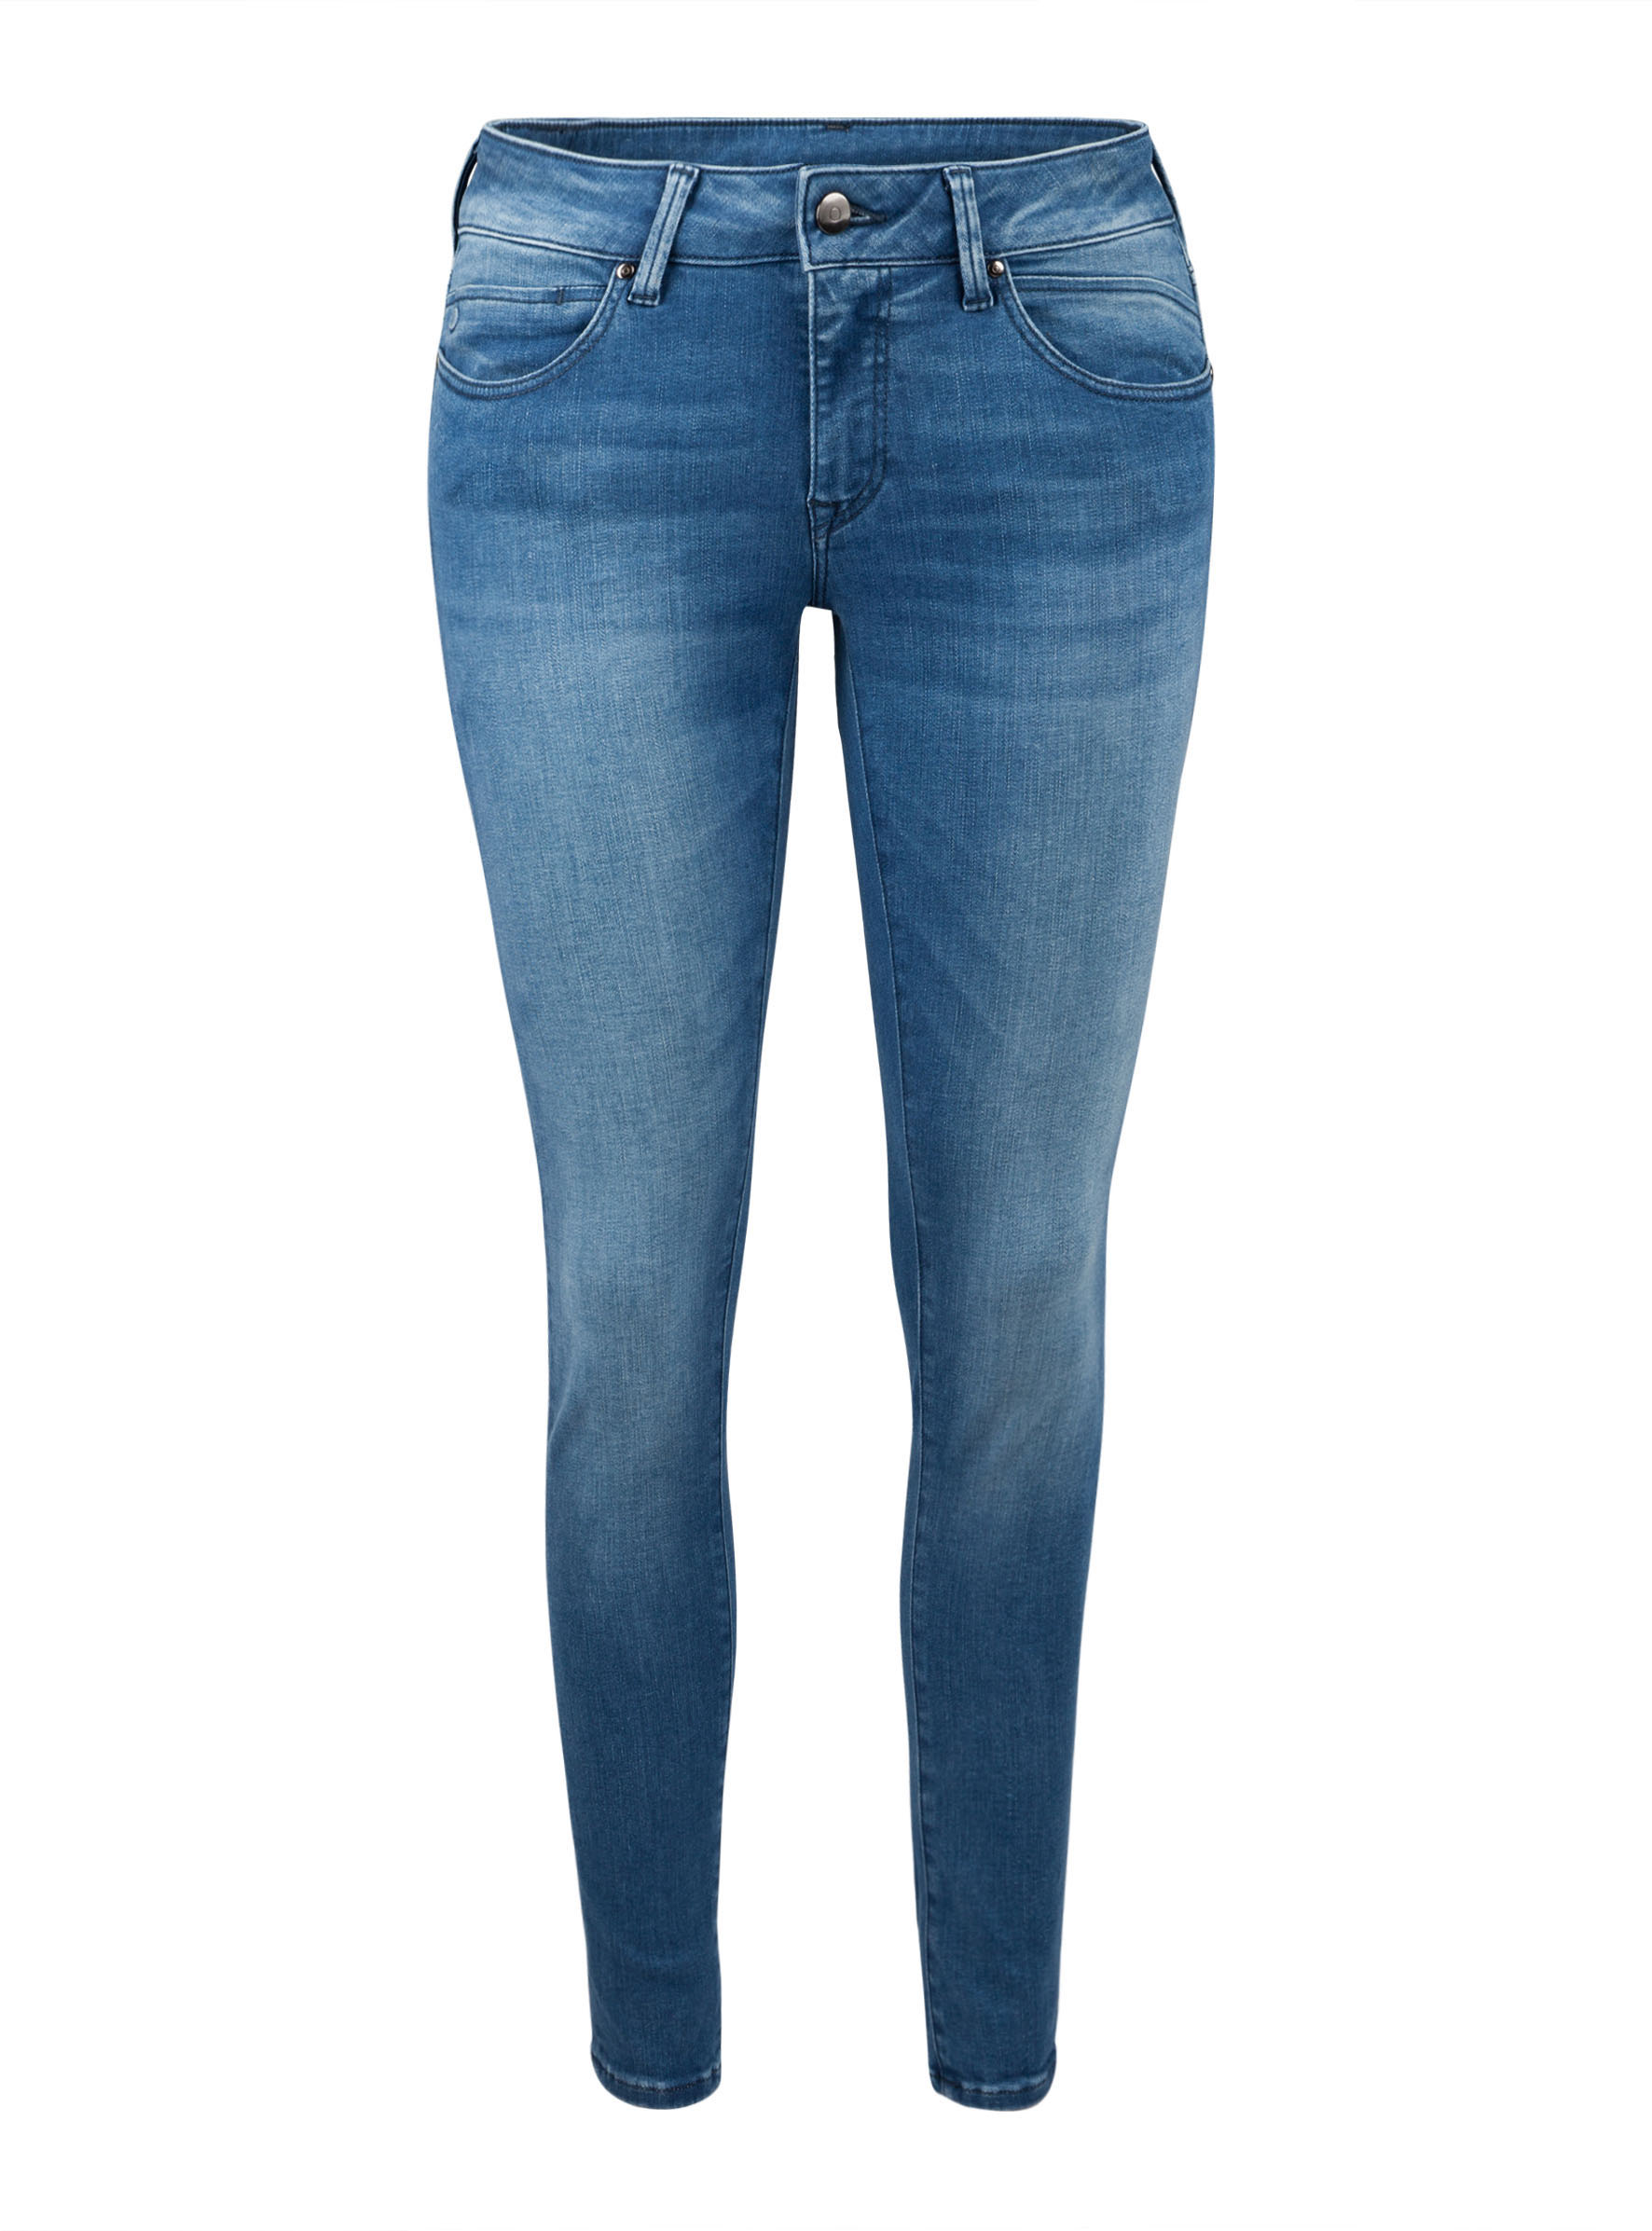 Ultra Move Fit Lexy in Ankle und Super Skinny